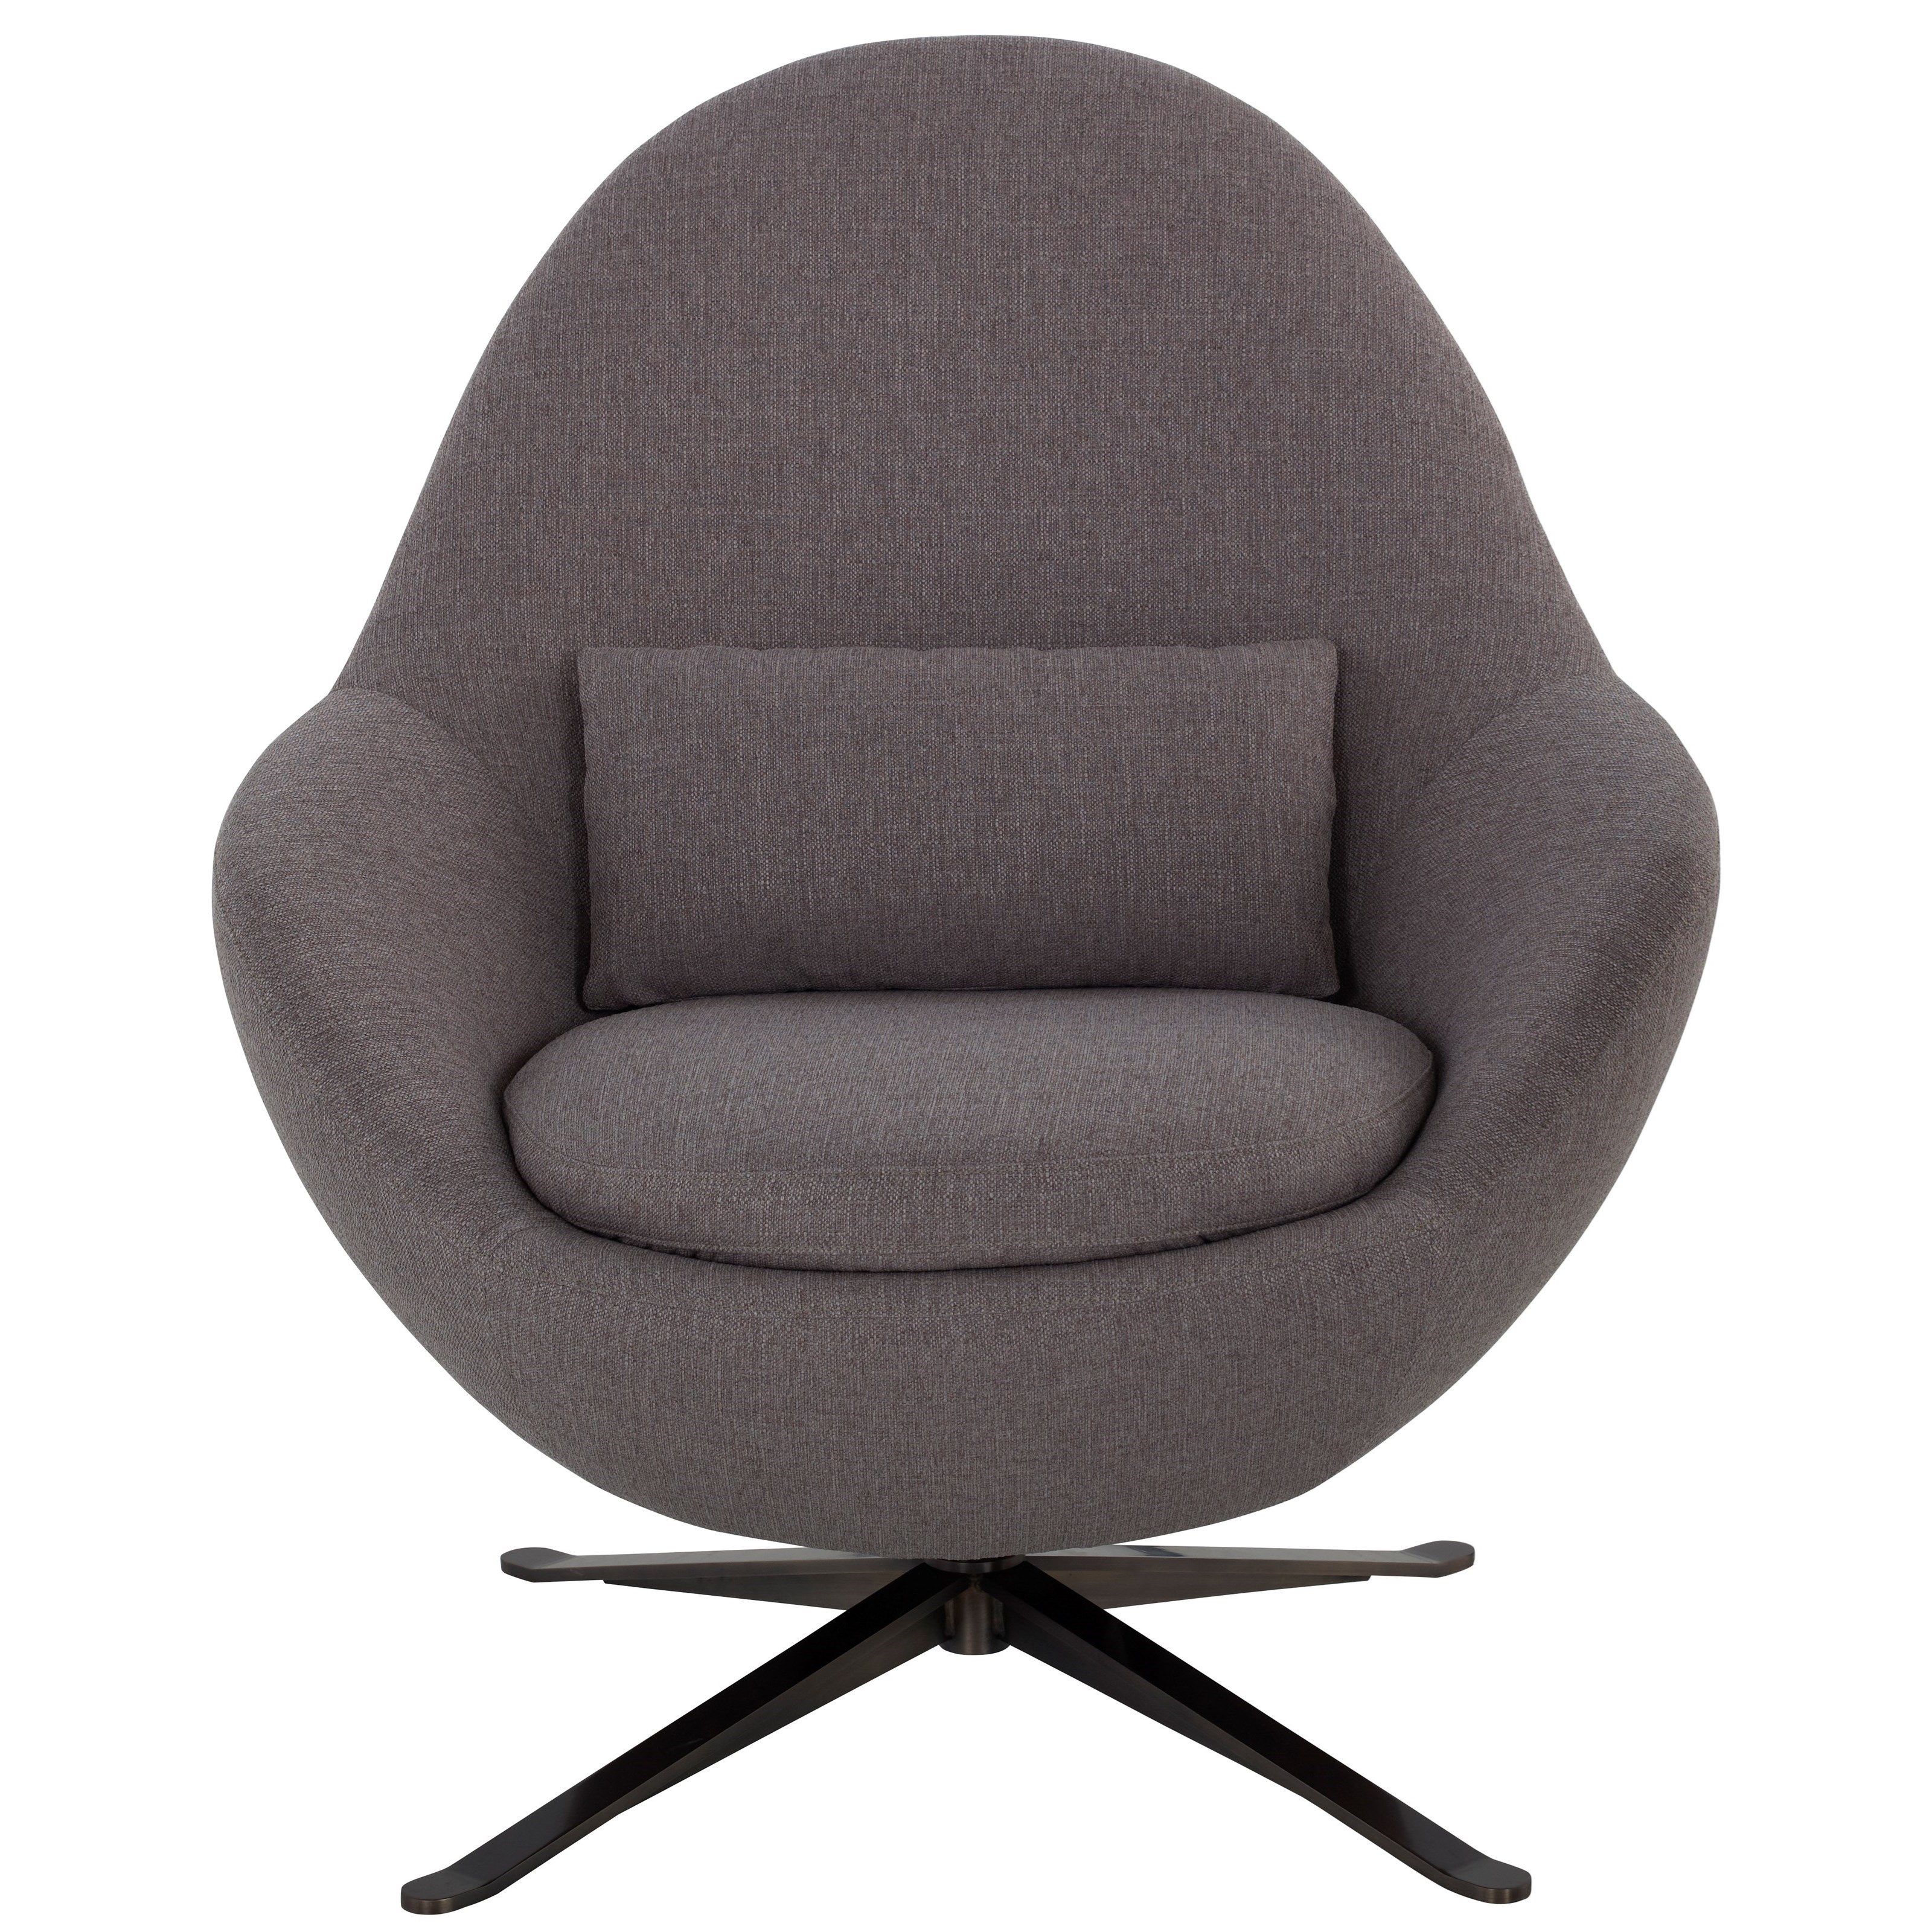 American Leather Jude Contemporary Round Swivel Chair